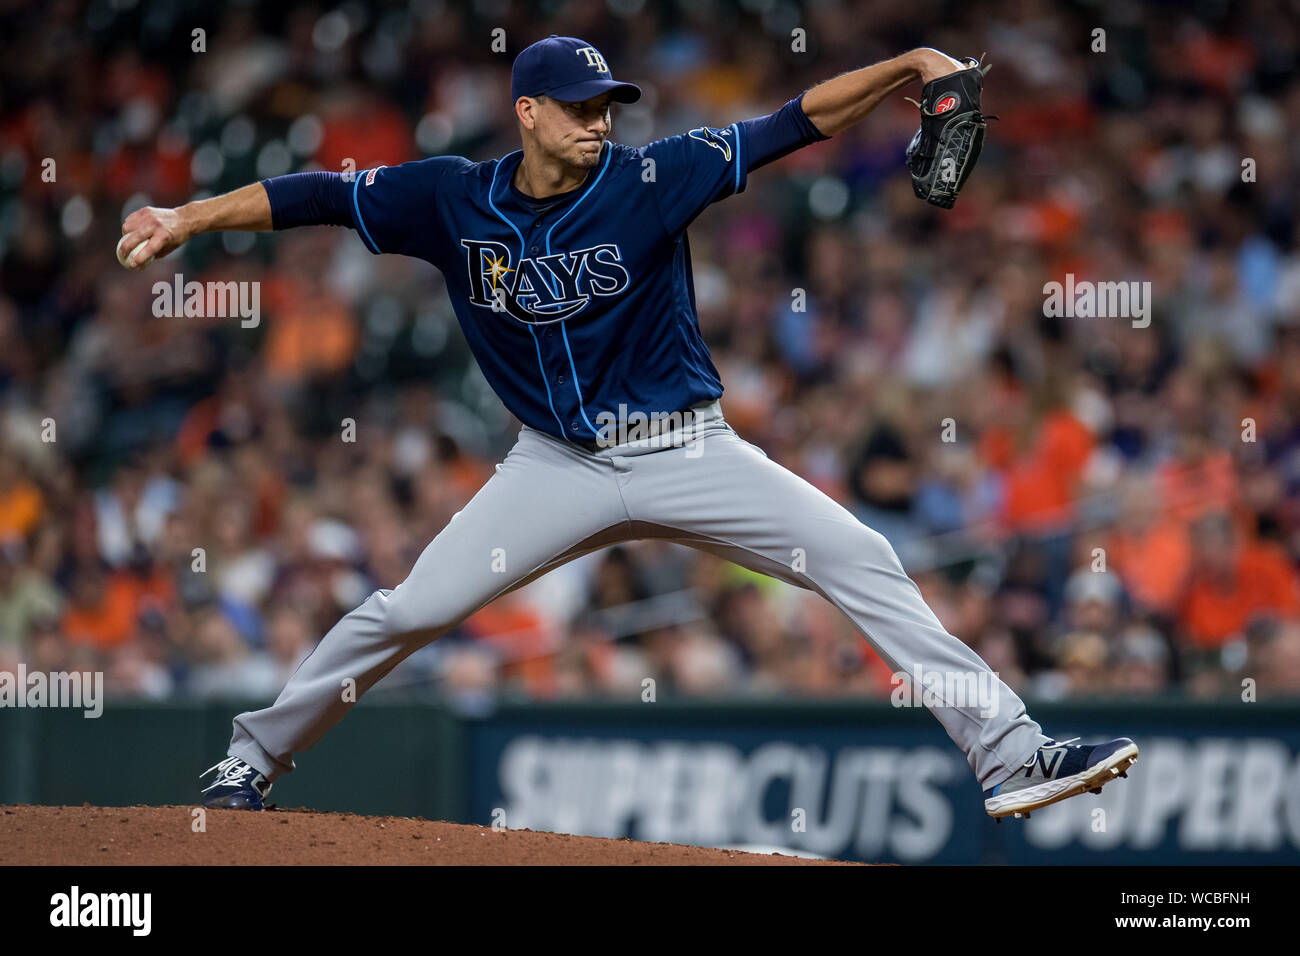 morton smith high resolution stock photography and images alamy https www alamy com houston texas usa 27th aug 2019 tampa bay rays starting pitcher charlie morton pitches against the houston astros in the 3rd inning at minute maid park in houston on tuesday august 27 2019 photo by trask smithupi credit upialamy live news image265785229 html